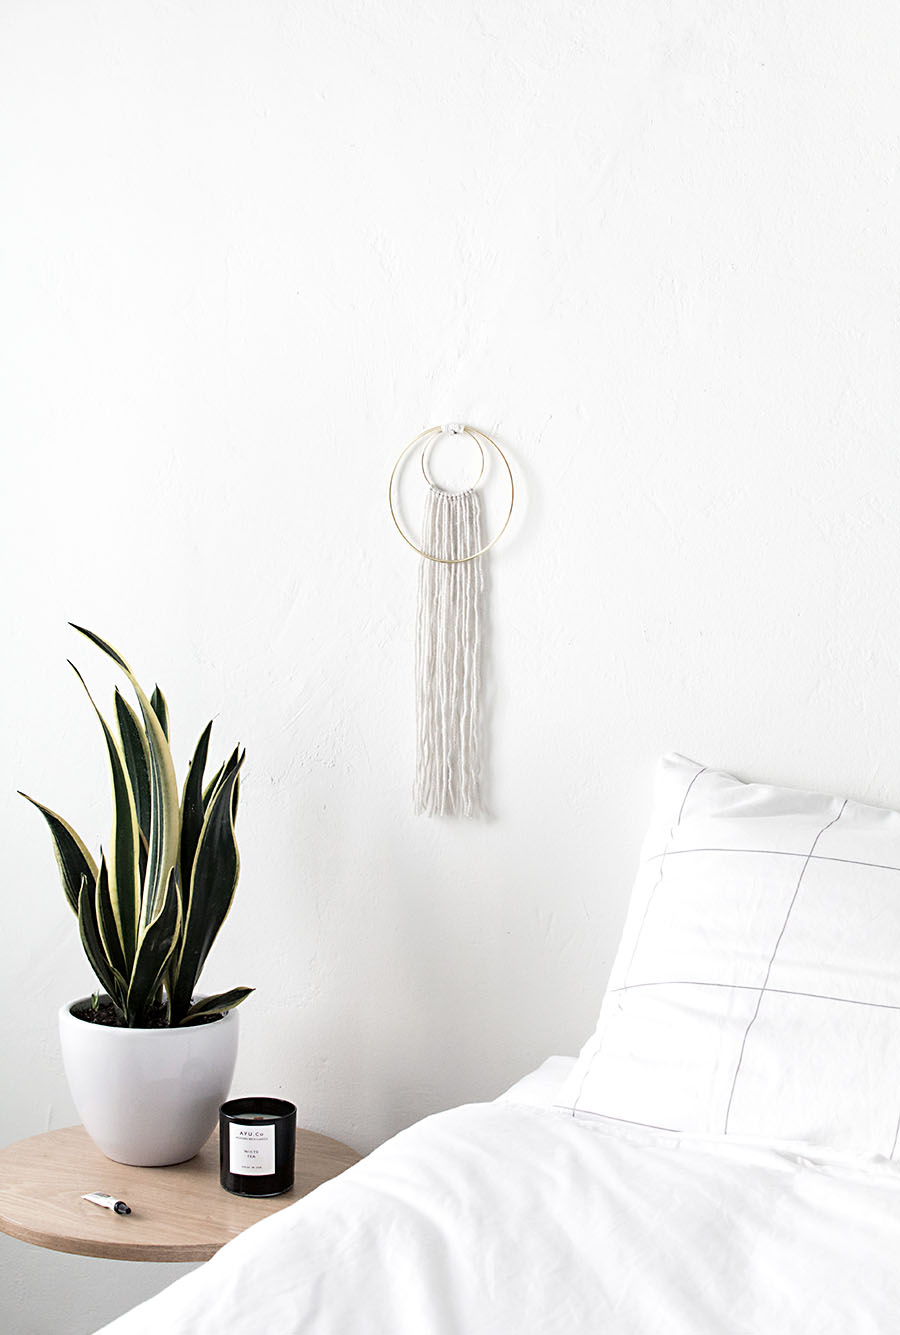 DIY- Double Ring Wall Hanging